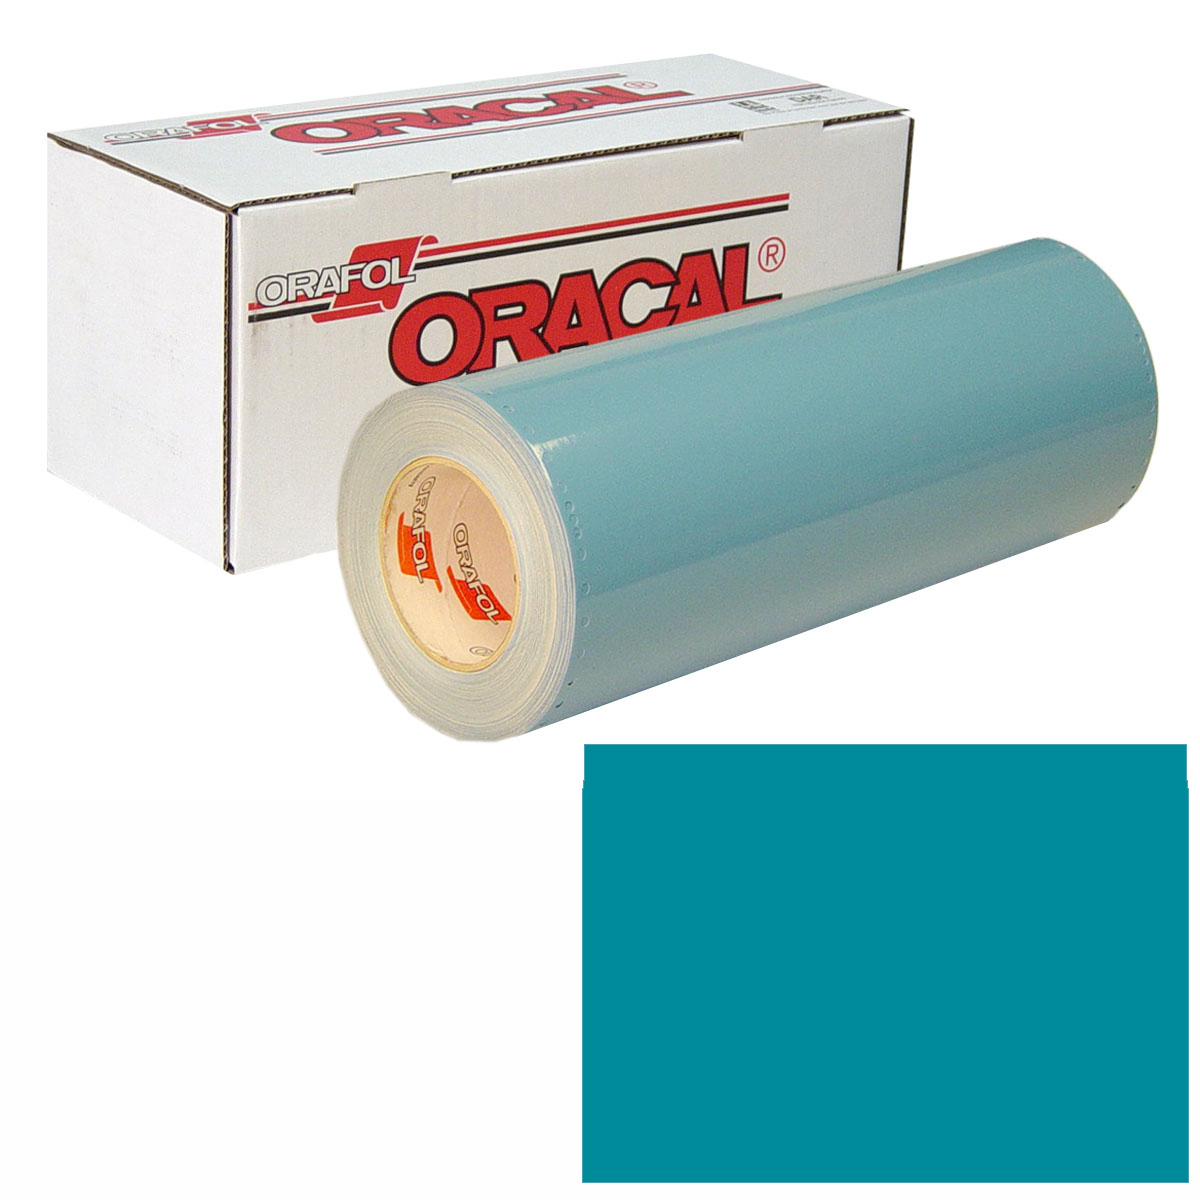 ORACAL 751 30in X 10yd 066 Turquoise Blue